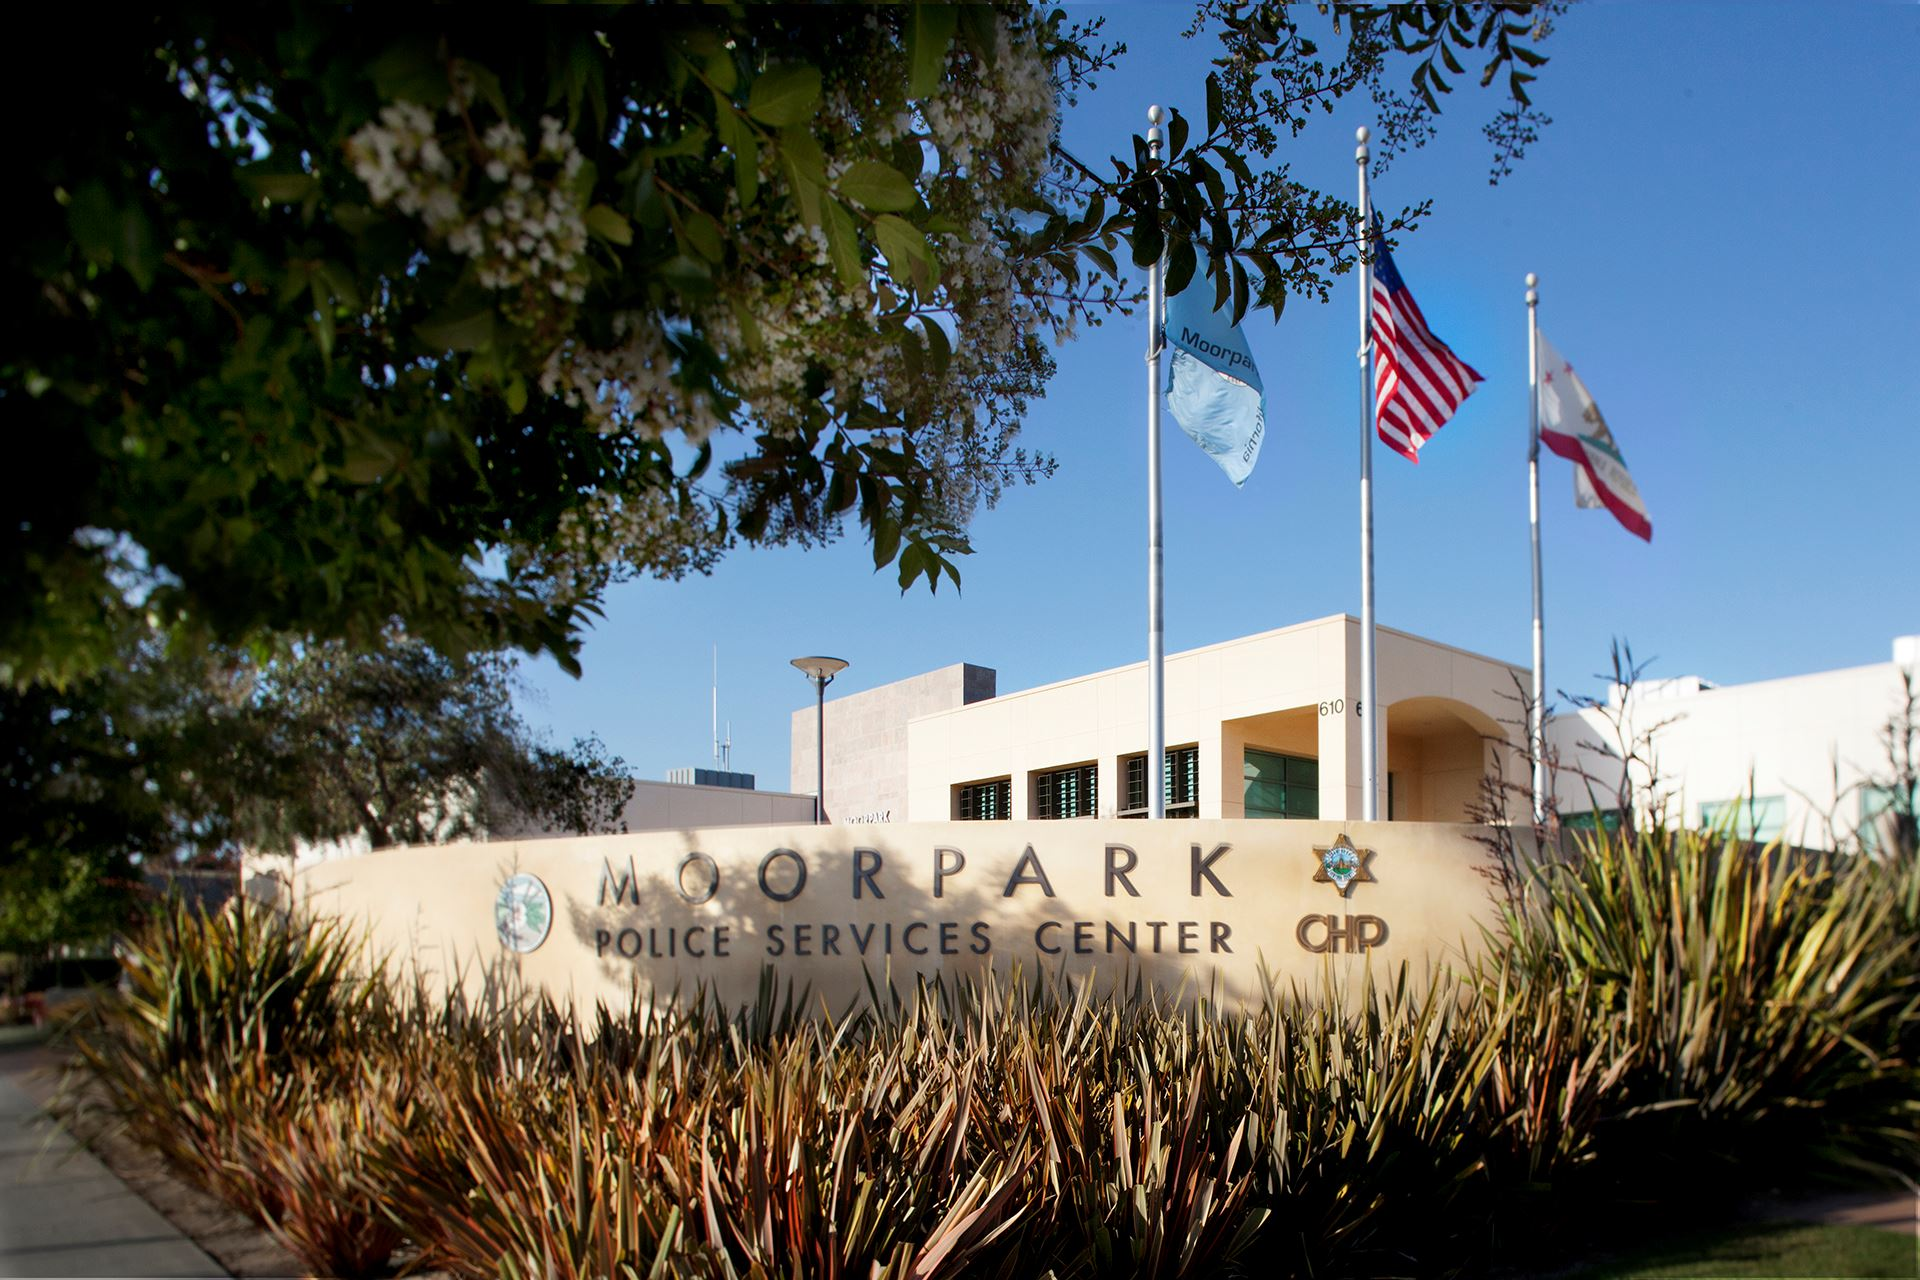 Moorpark Police Station